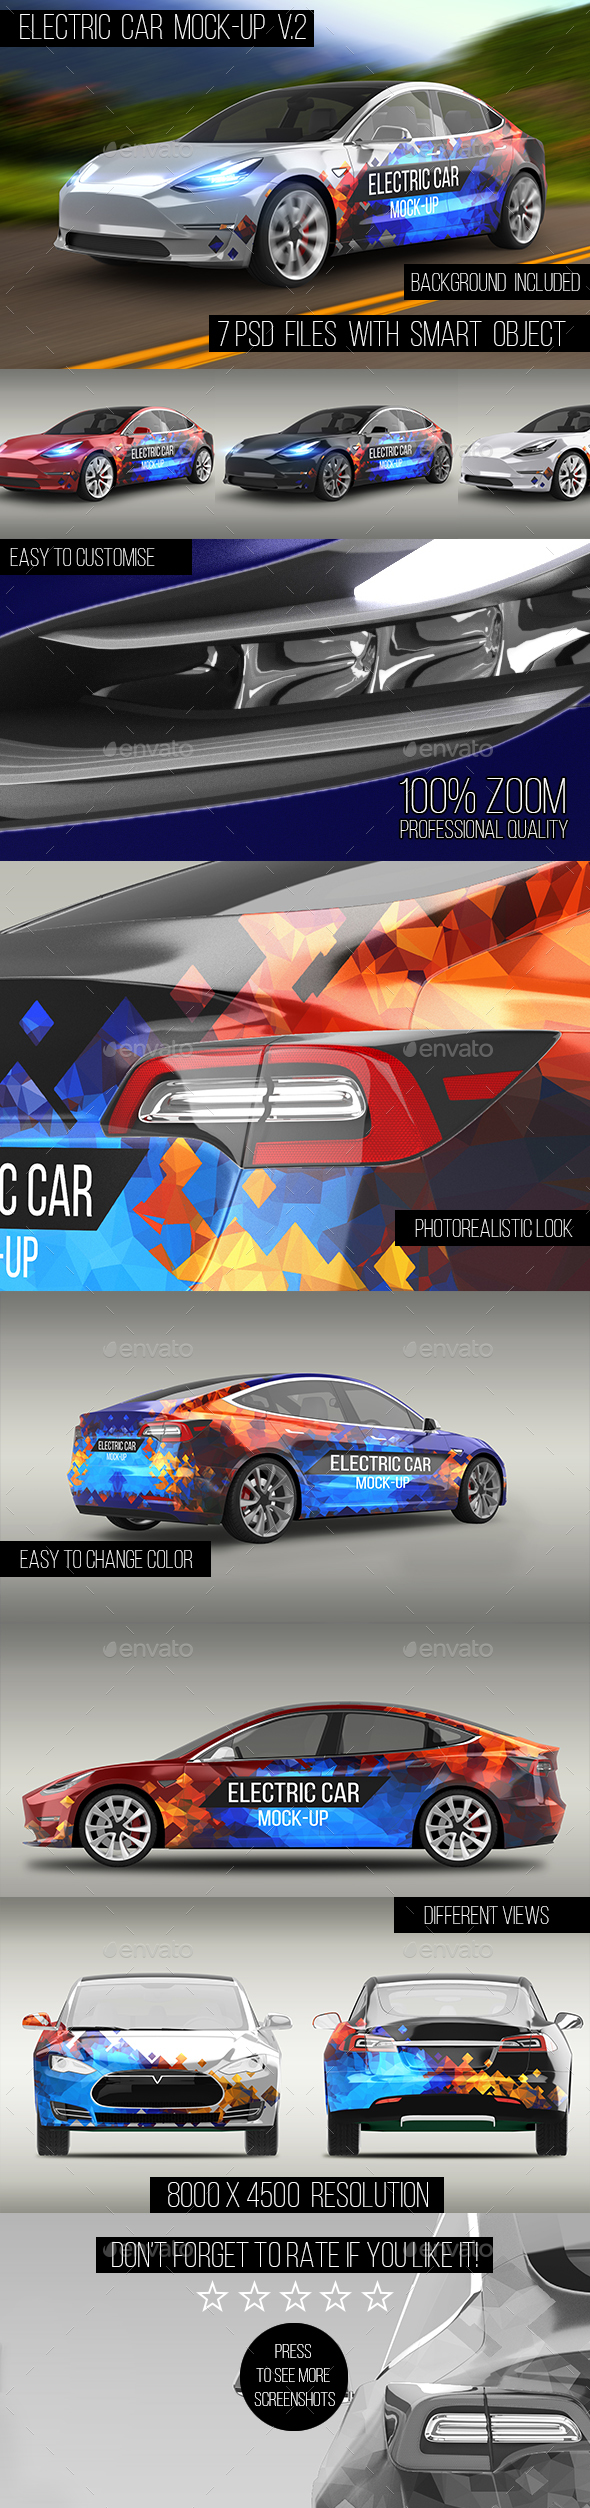 Electric Car Mock-Up V.2 - Vehicle Wraps Print